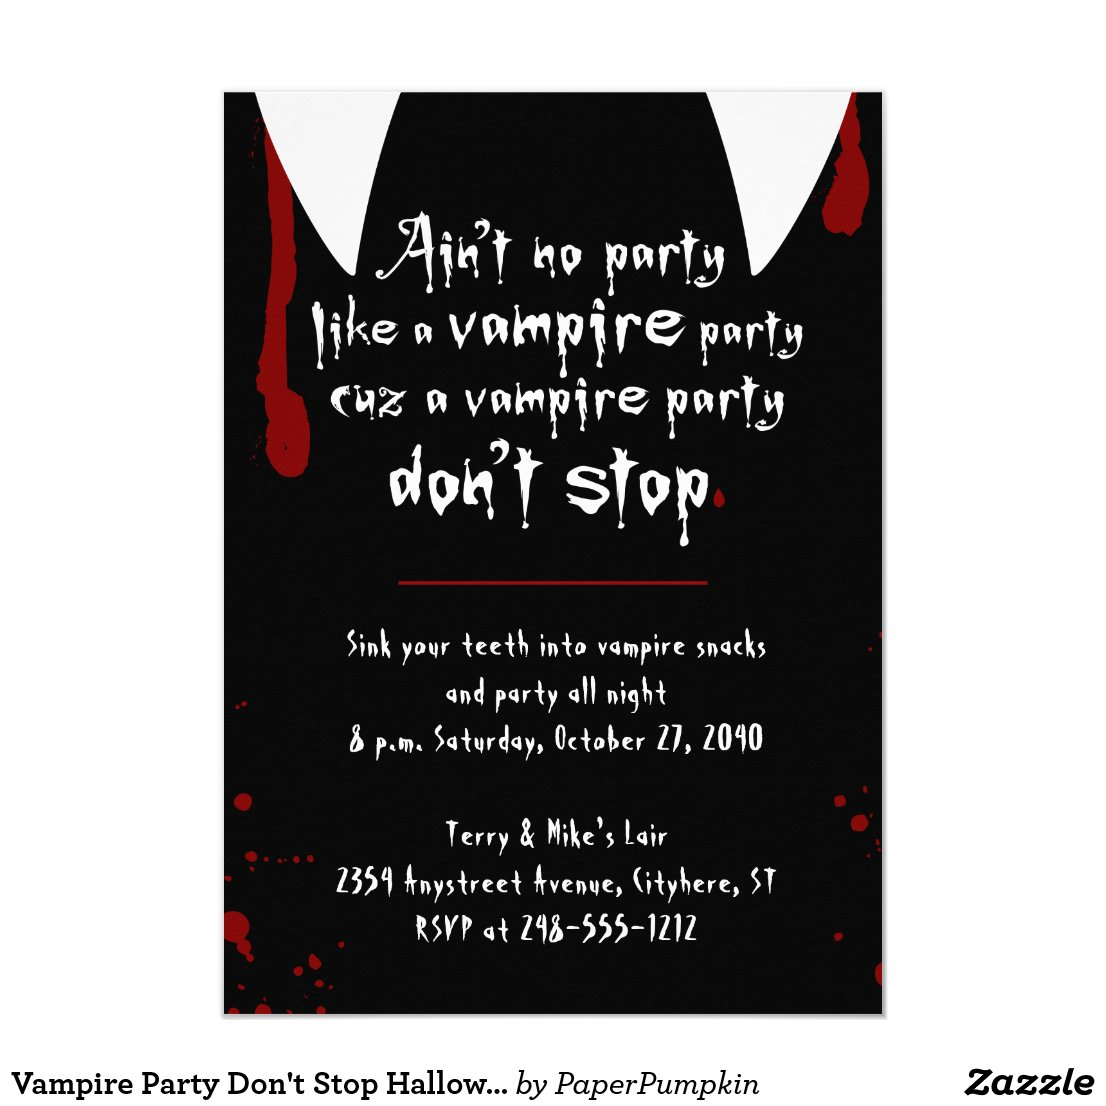 Vampire Party Don't Stop Halloween Party Invitation